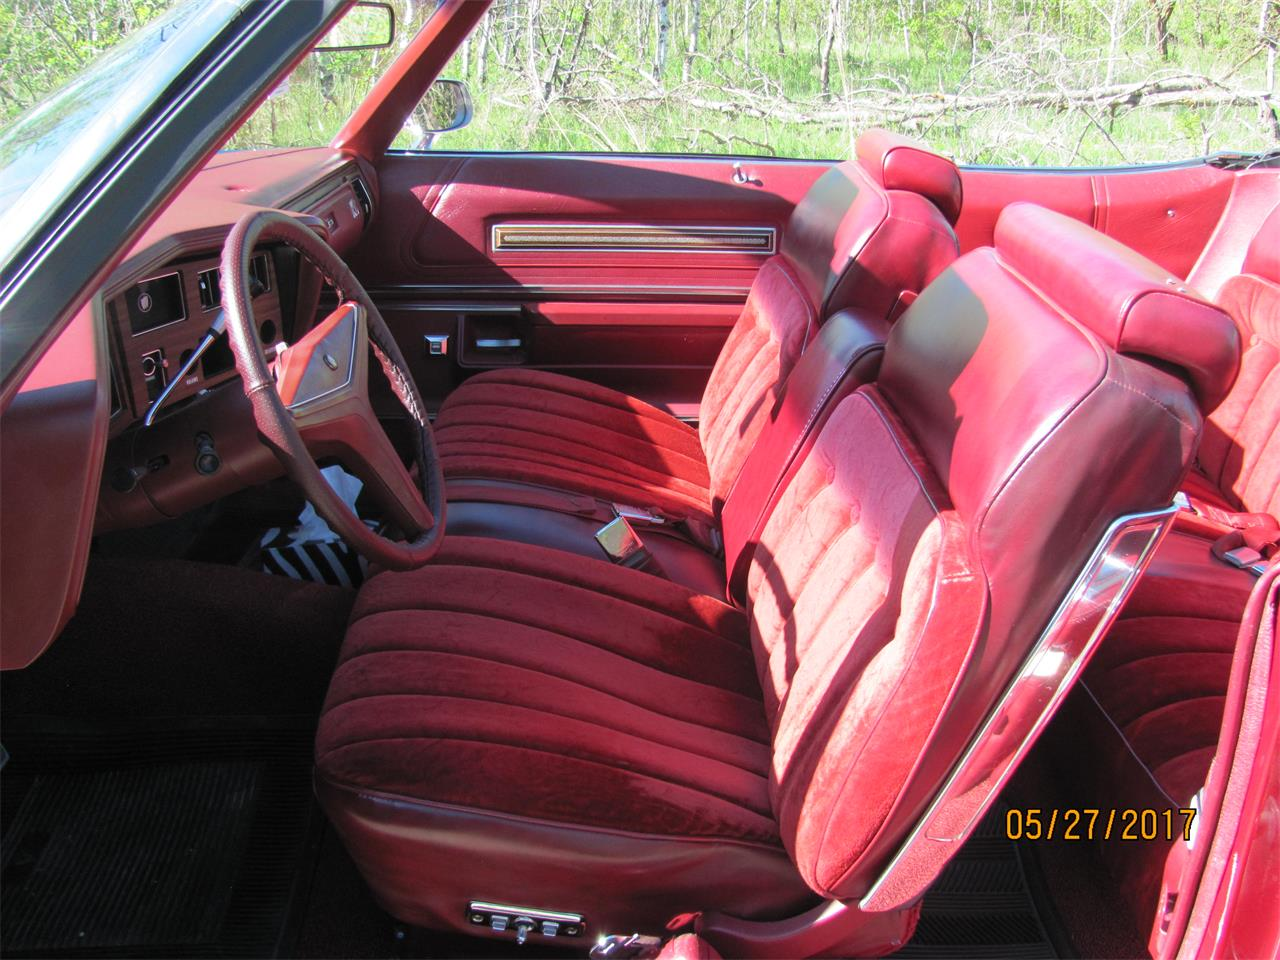 Large Picture of 1974 Buick LeSabre located in Winnipeg Manitoba - $15,500.00 - NE2D